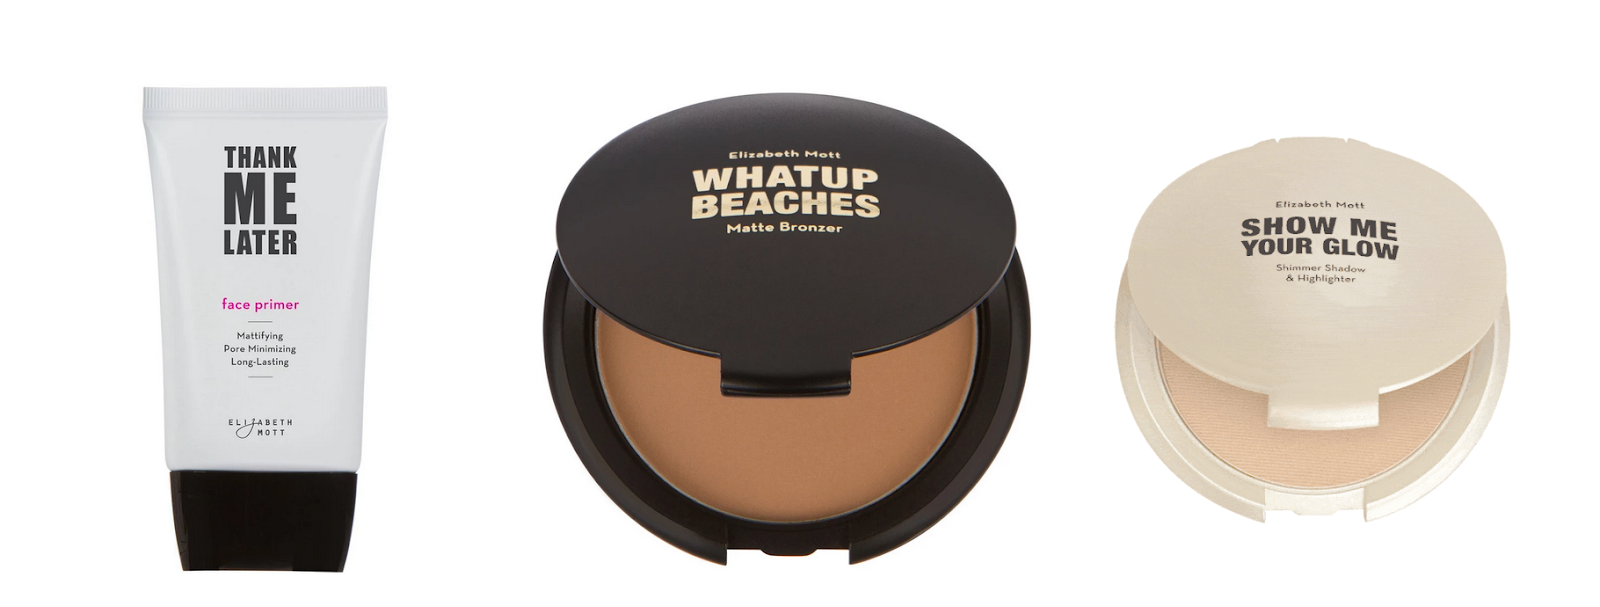 Elizabeth Mott - Face Primer, Matte Bronzer, Shimmer Shadow & Highlighter